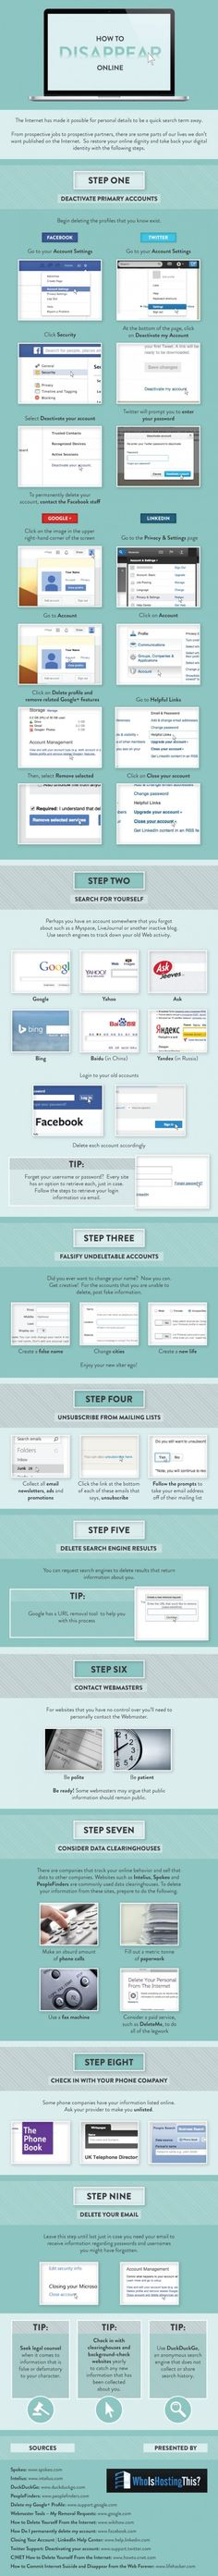 How To Actually Delete your Digital Footprint - Edudemic